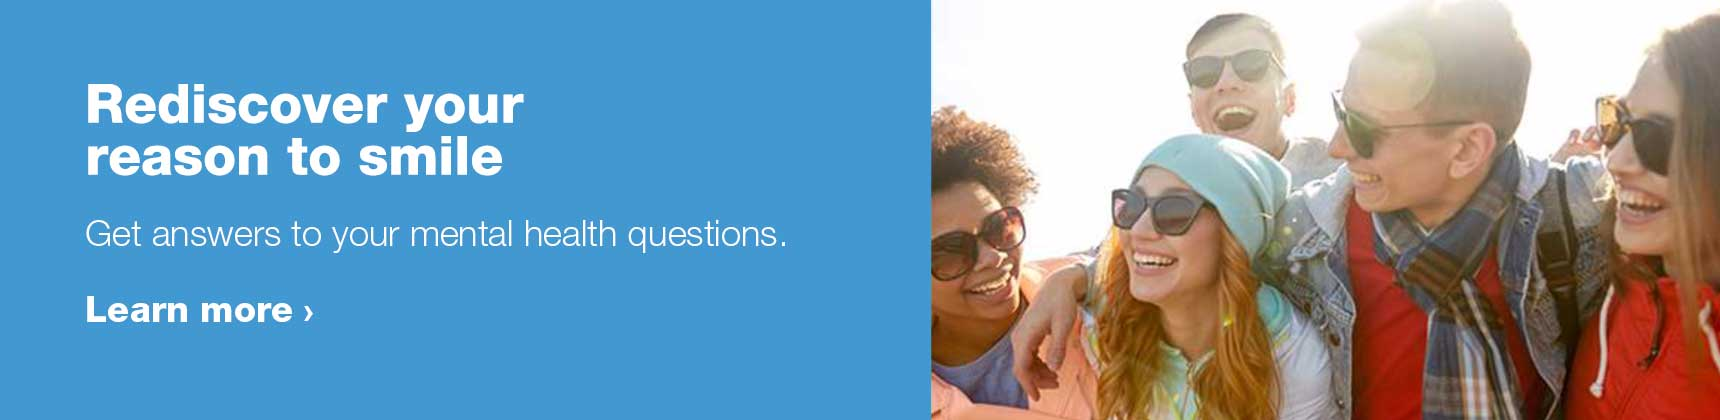 Rediscover your reason to smile. Get answers to your mental health questions. Learn more.